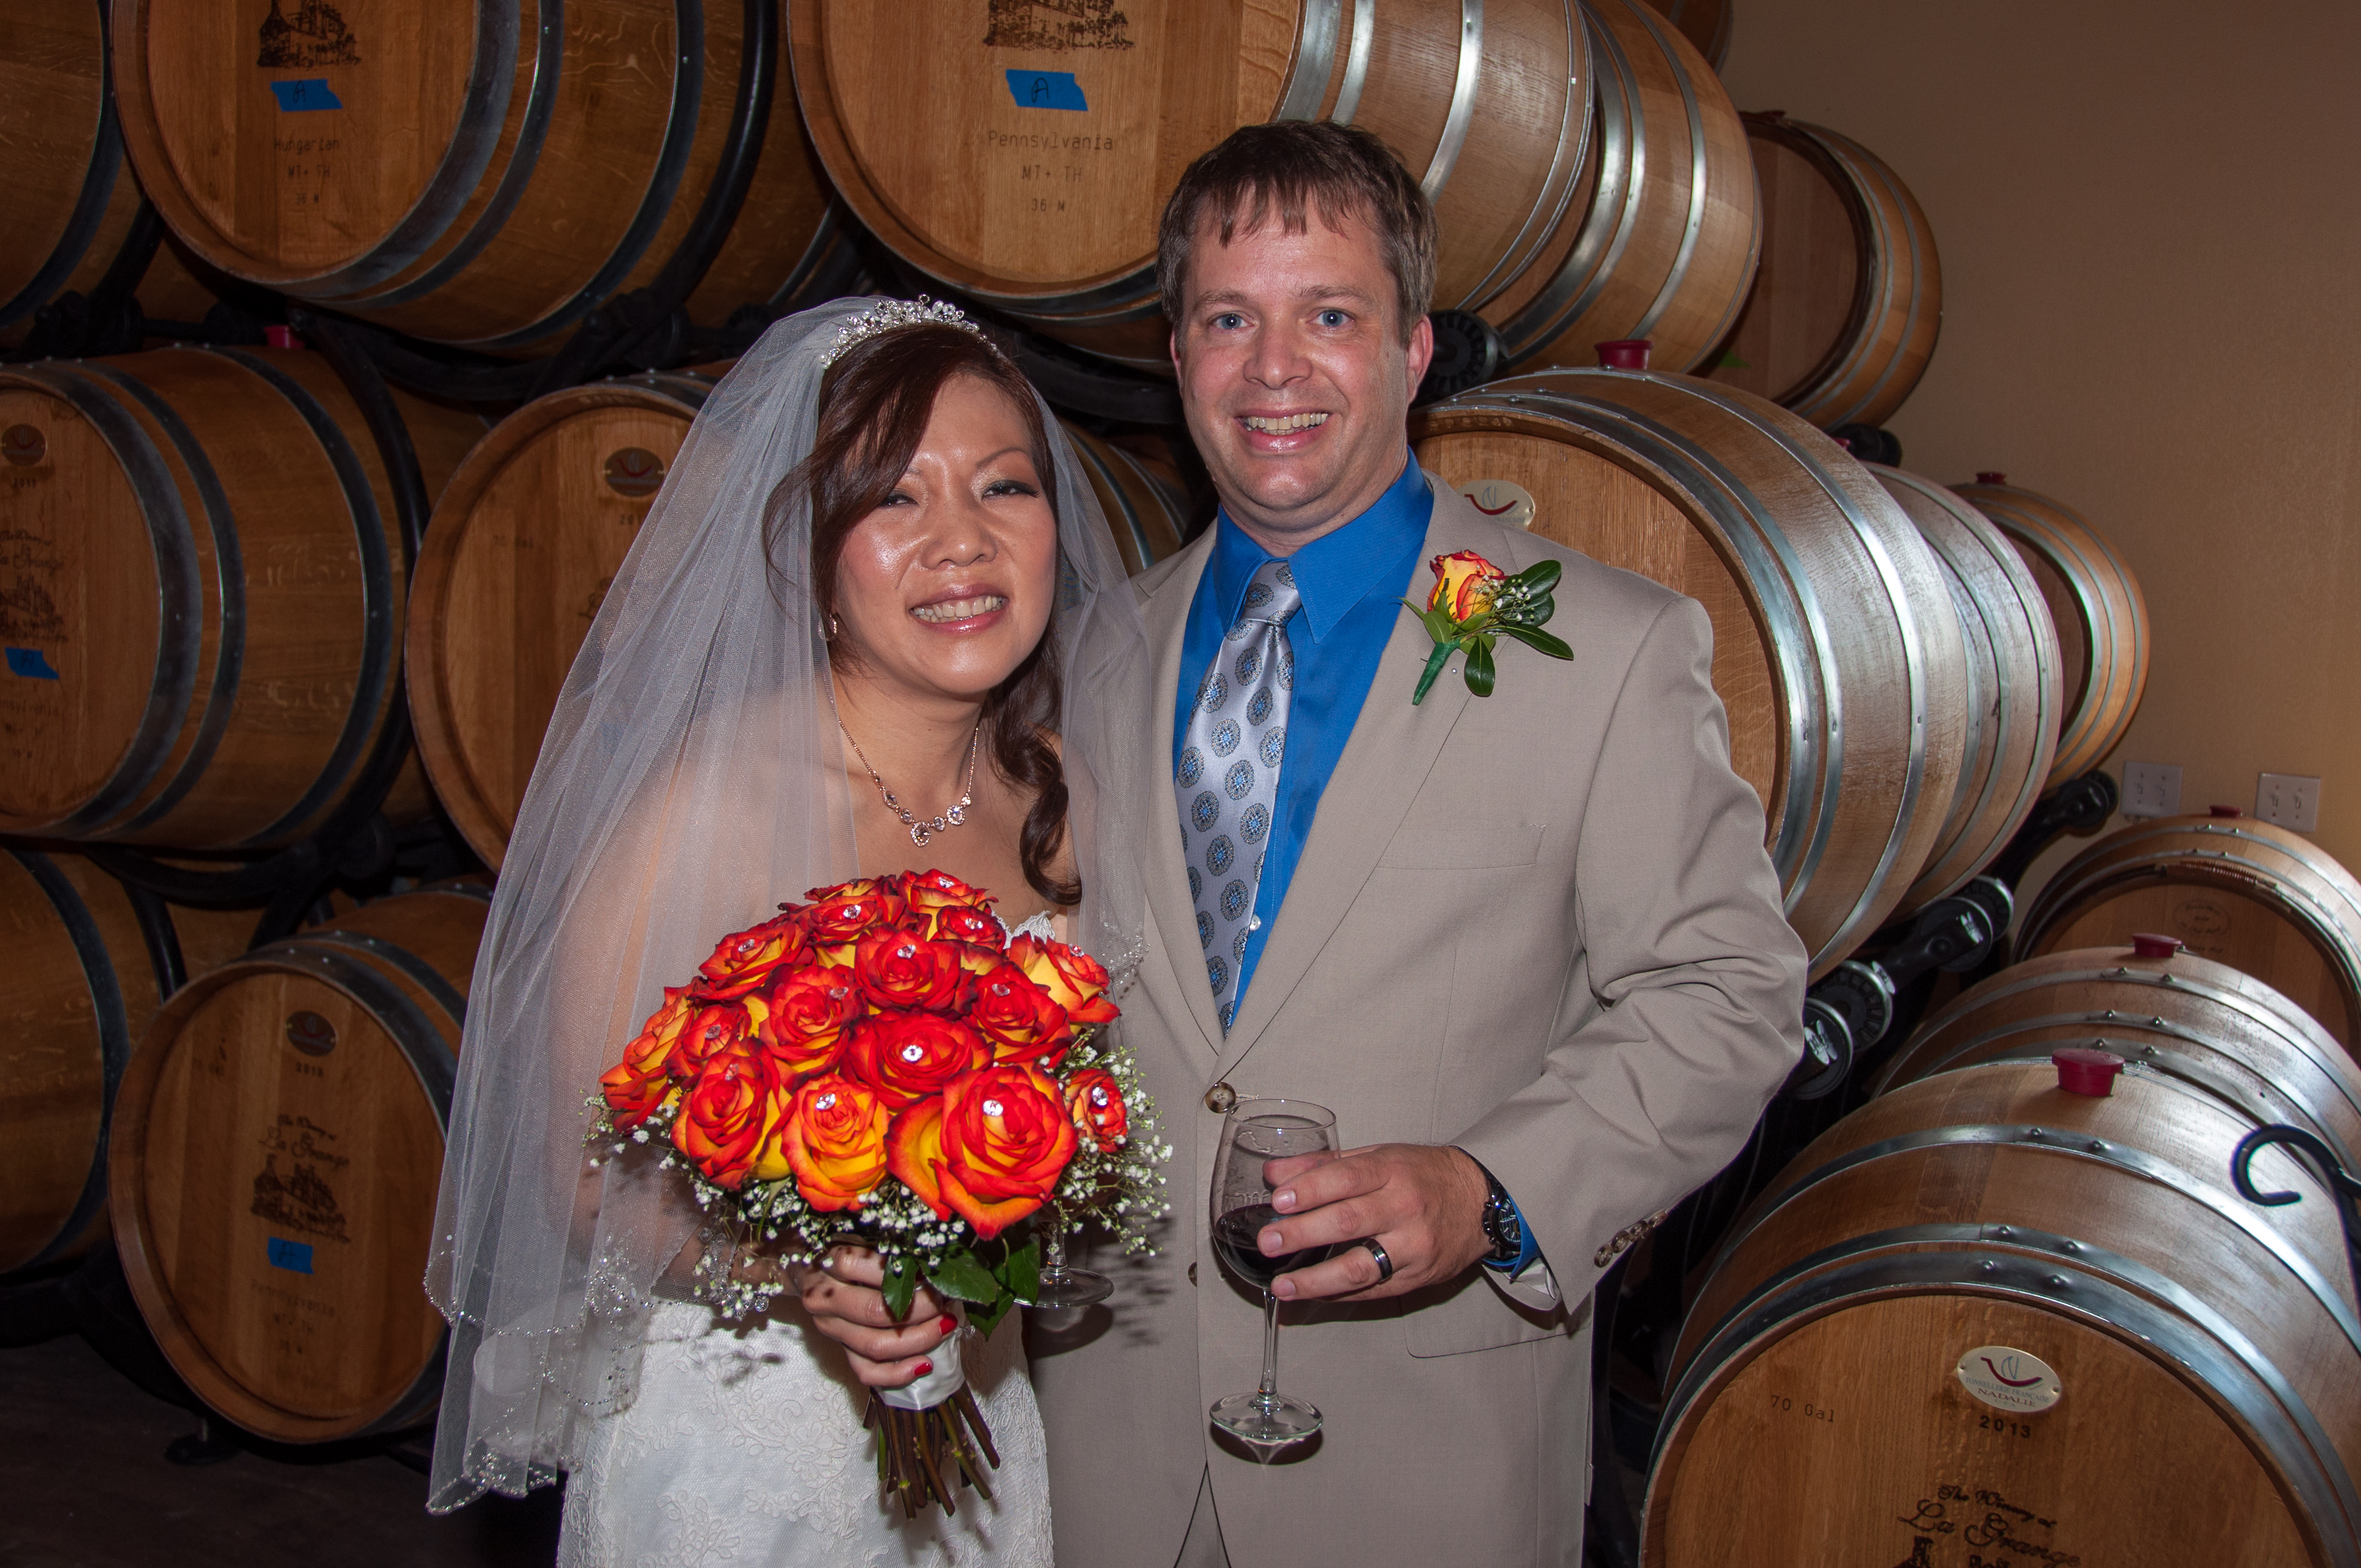 Taipei native Catherine Judson (née Chang) and Virginian Mark Judson after their wedding in Virginia